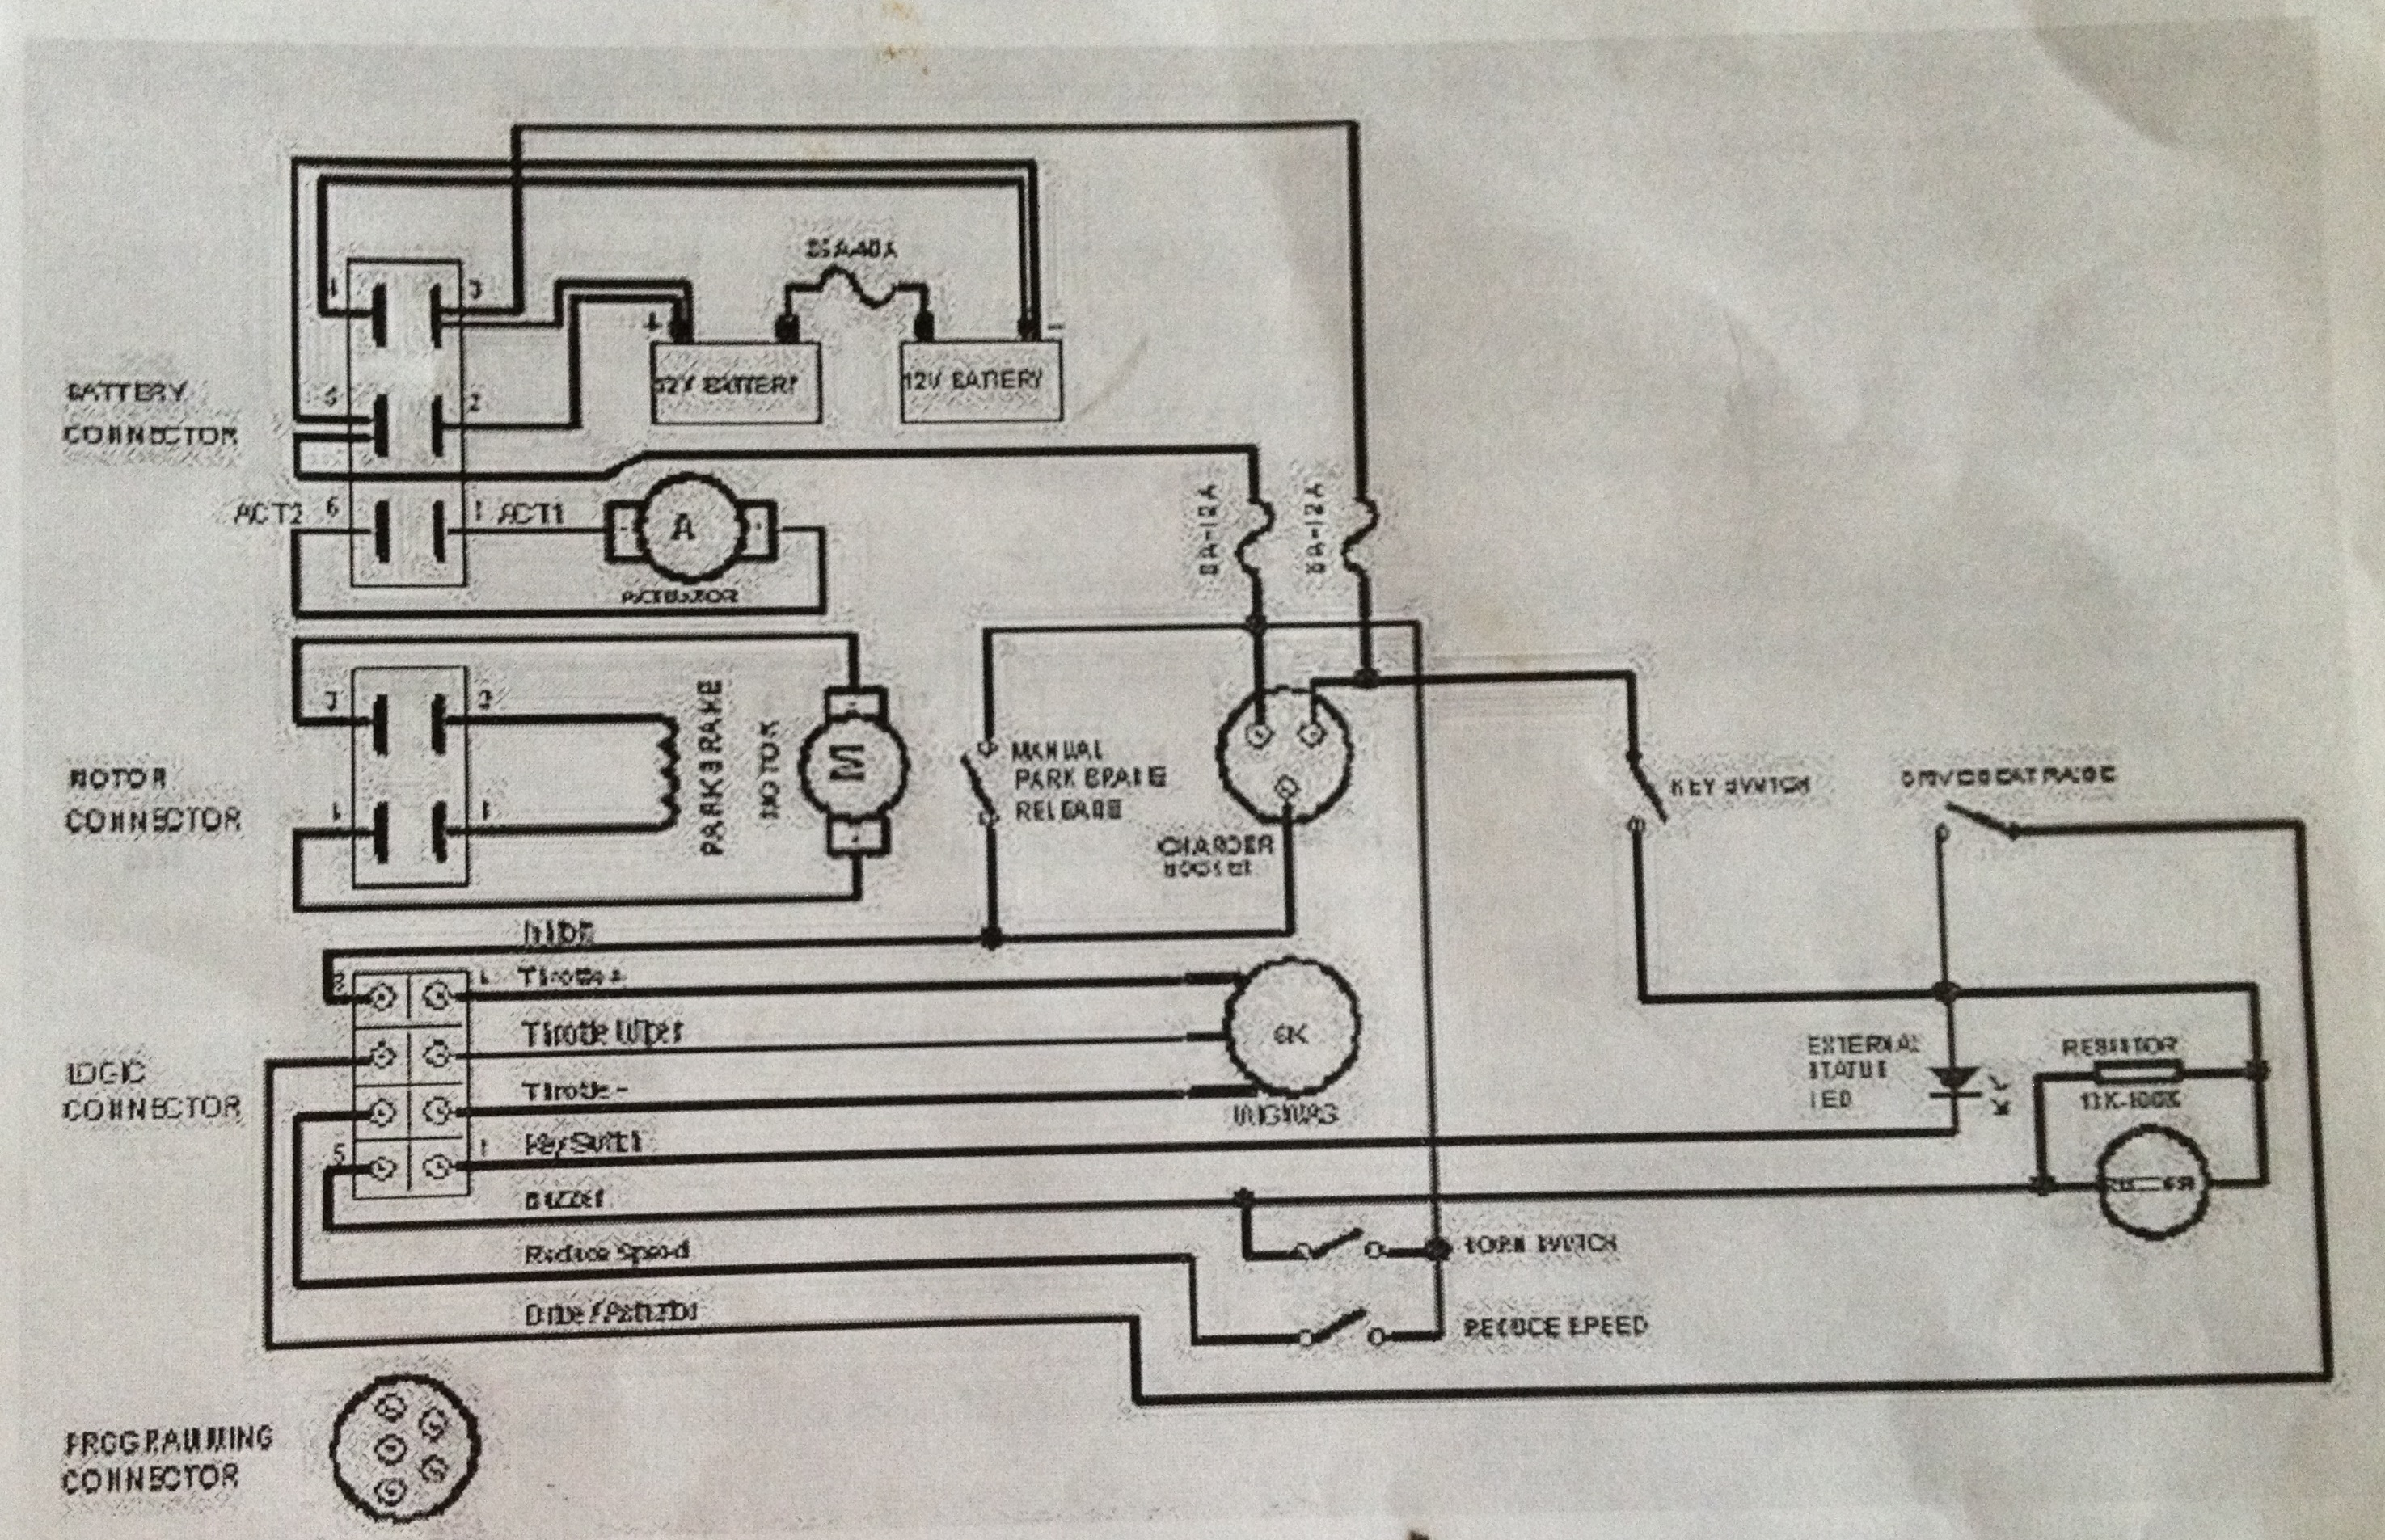 wiring diagram pay on time year of clean water